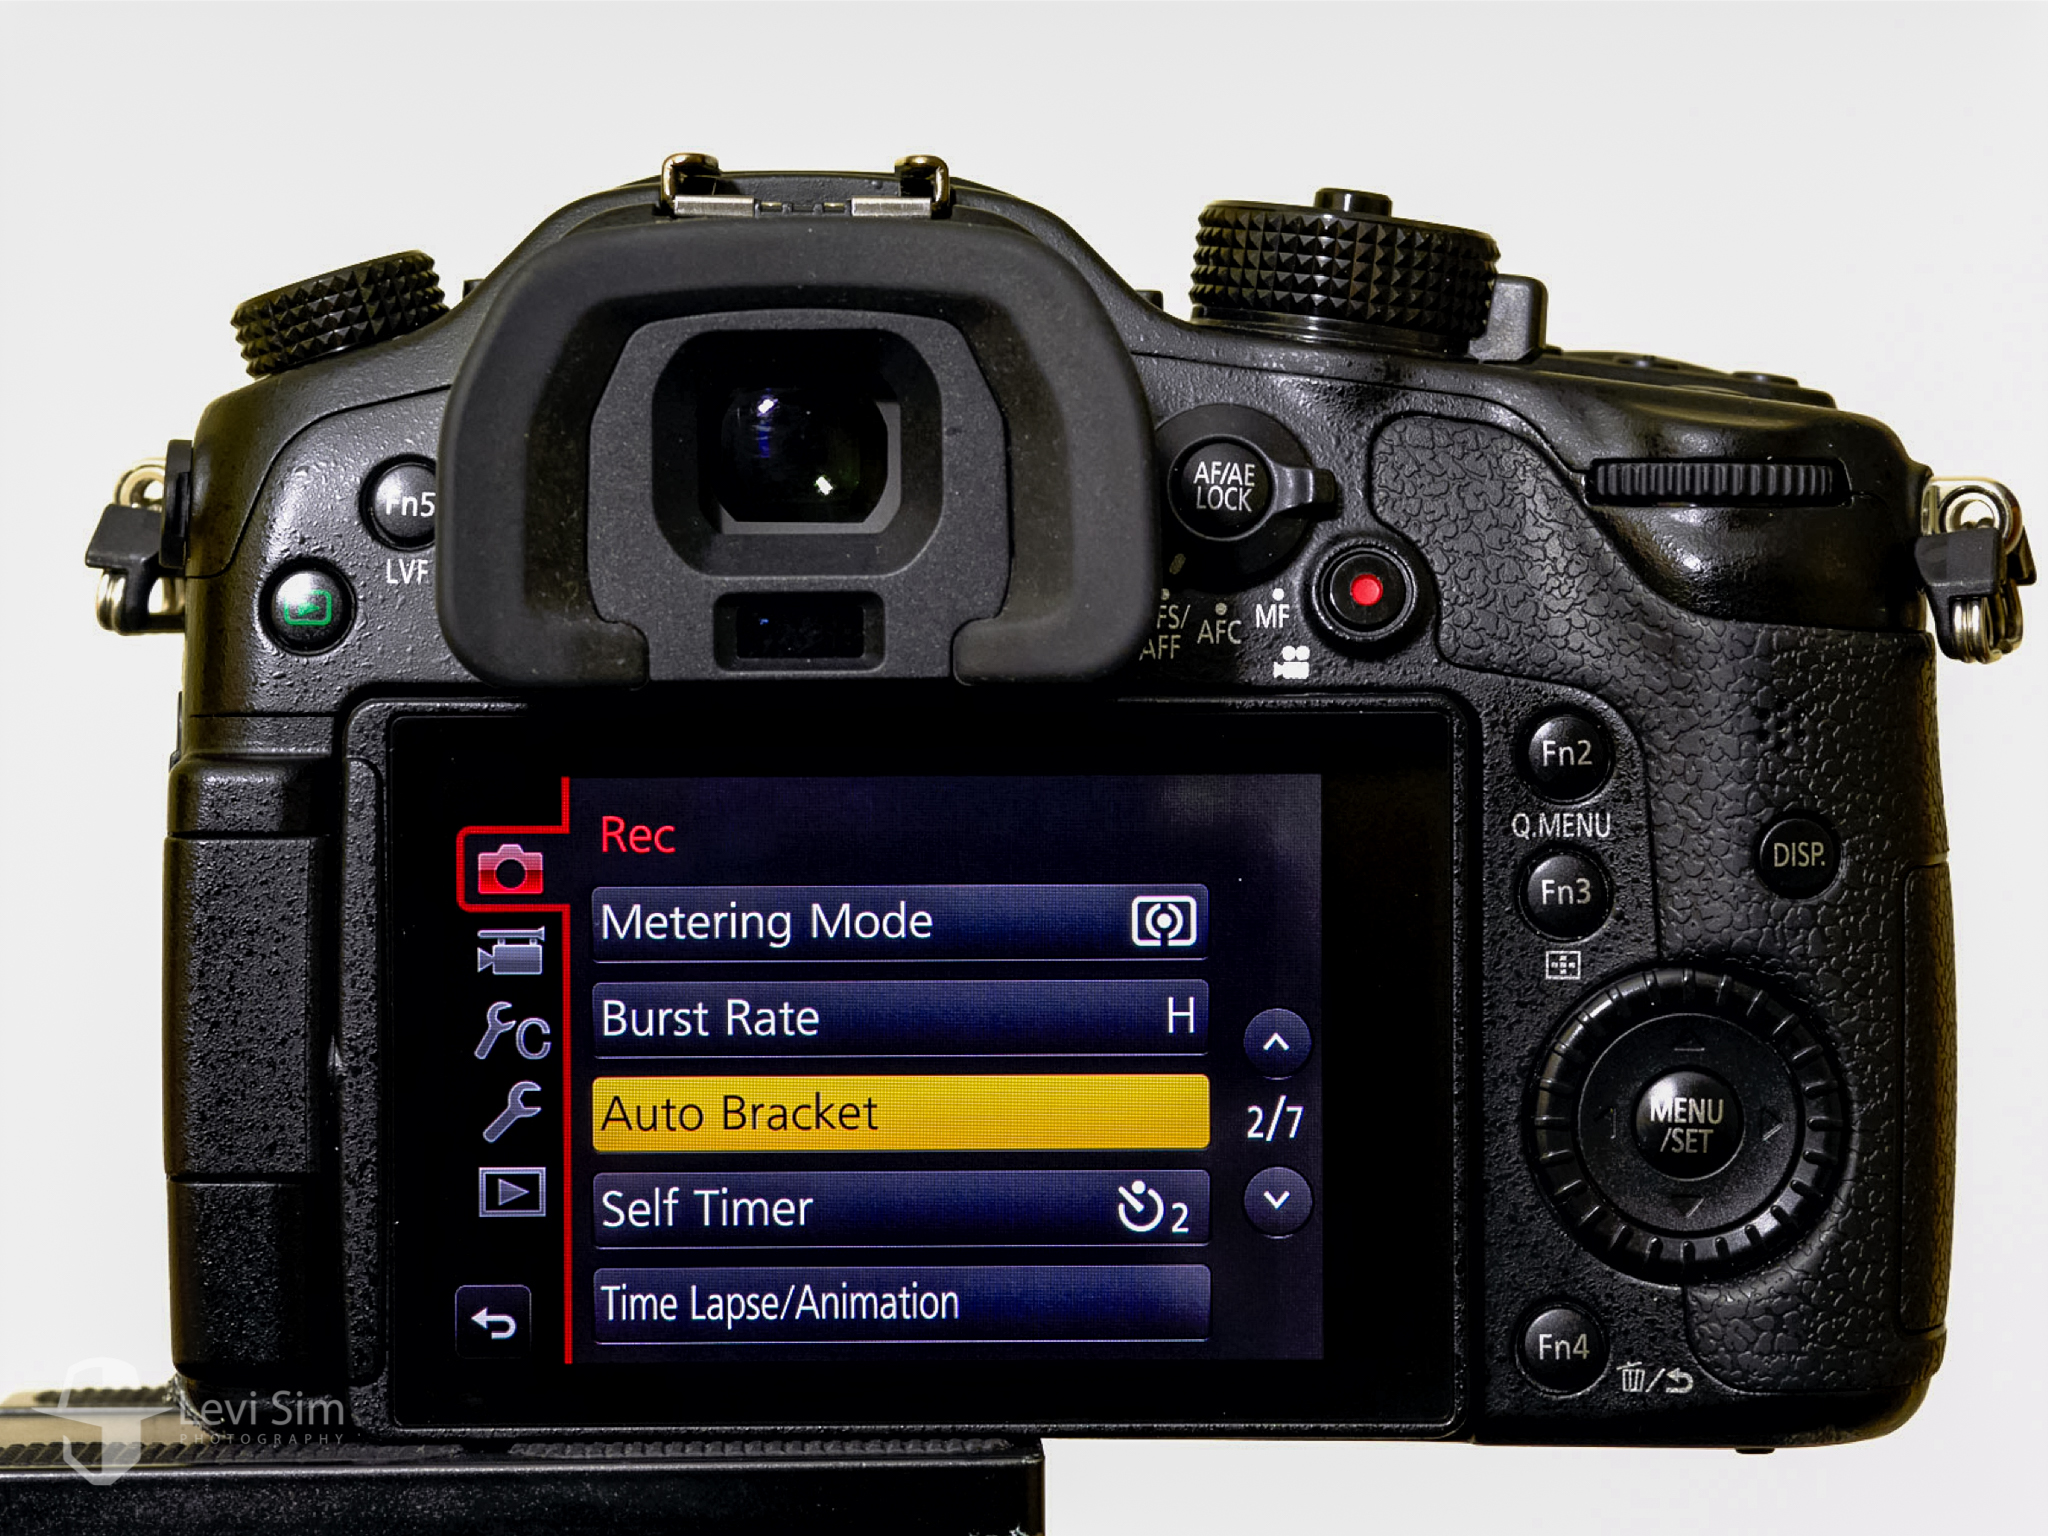 This is where you'll find the Exposure Bracketing settings